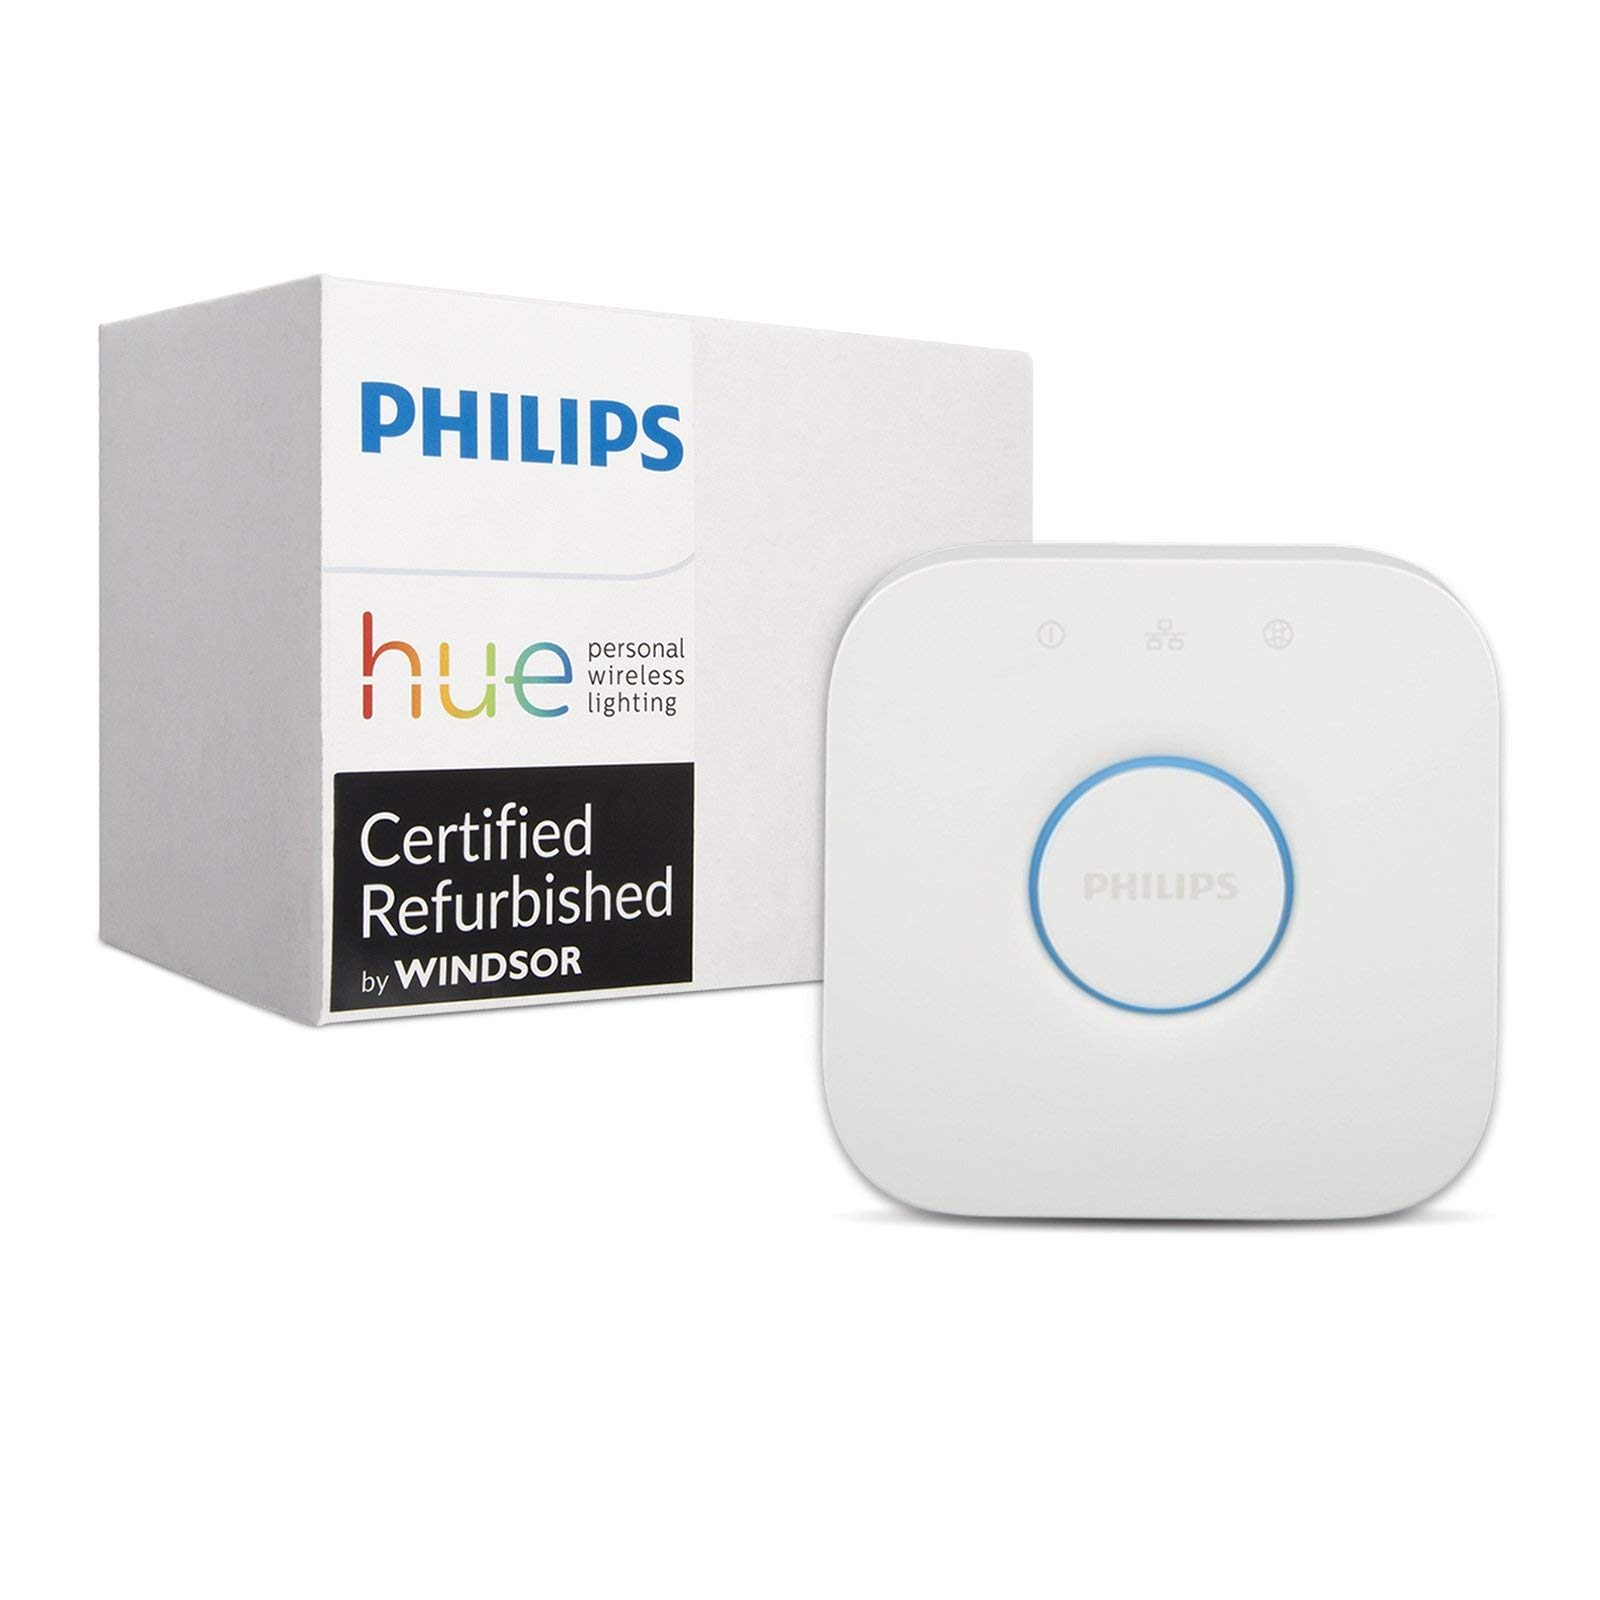 Philips Hue Smart Bridge - 2nd Generation, Latest Model - Compatible with Alexa, Apple HomeKit and Google Assistant (Renewed) by PHILIPS